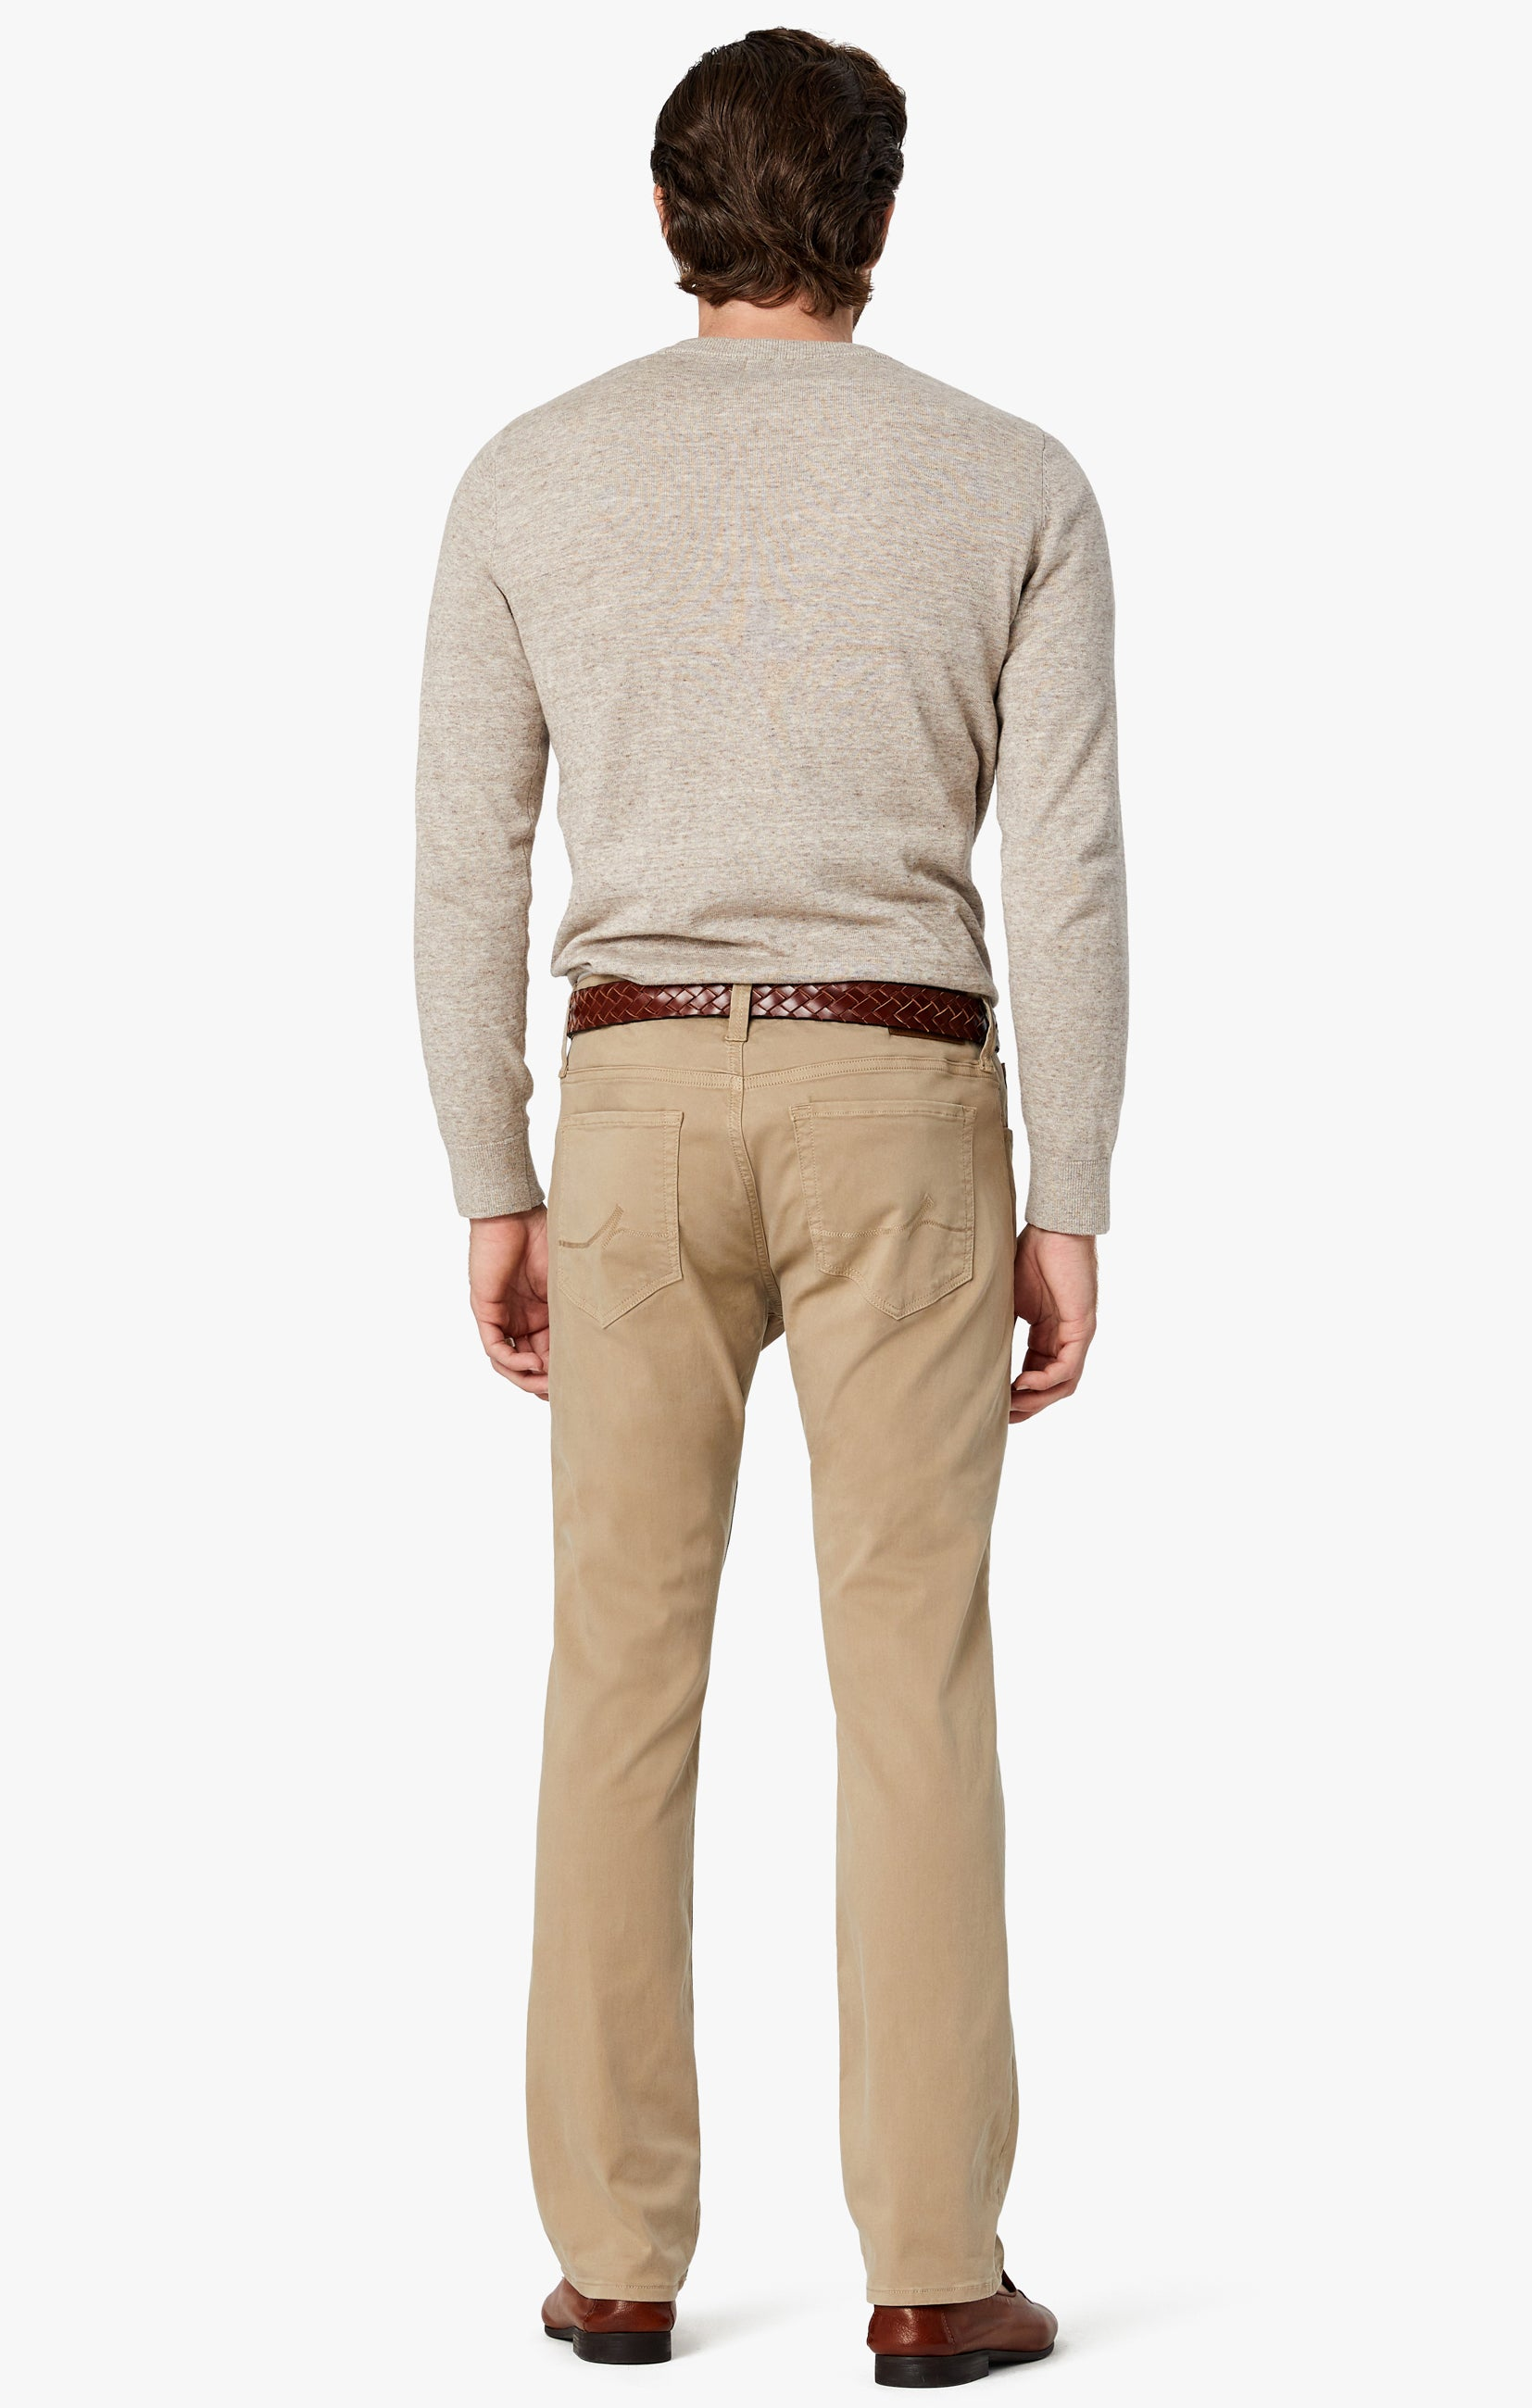 Courage Straight Leg Pants in Sand Twill Image 3